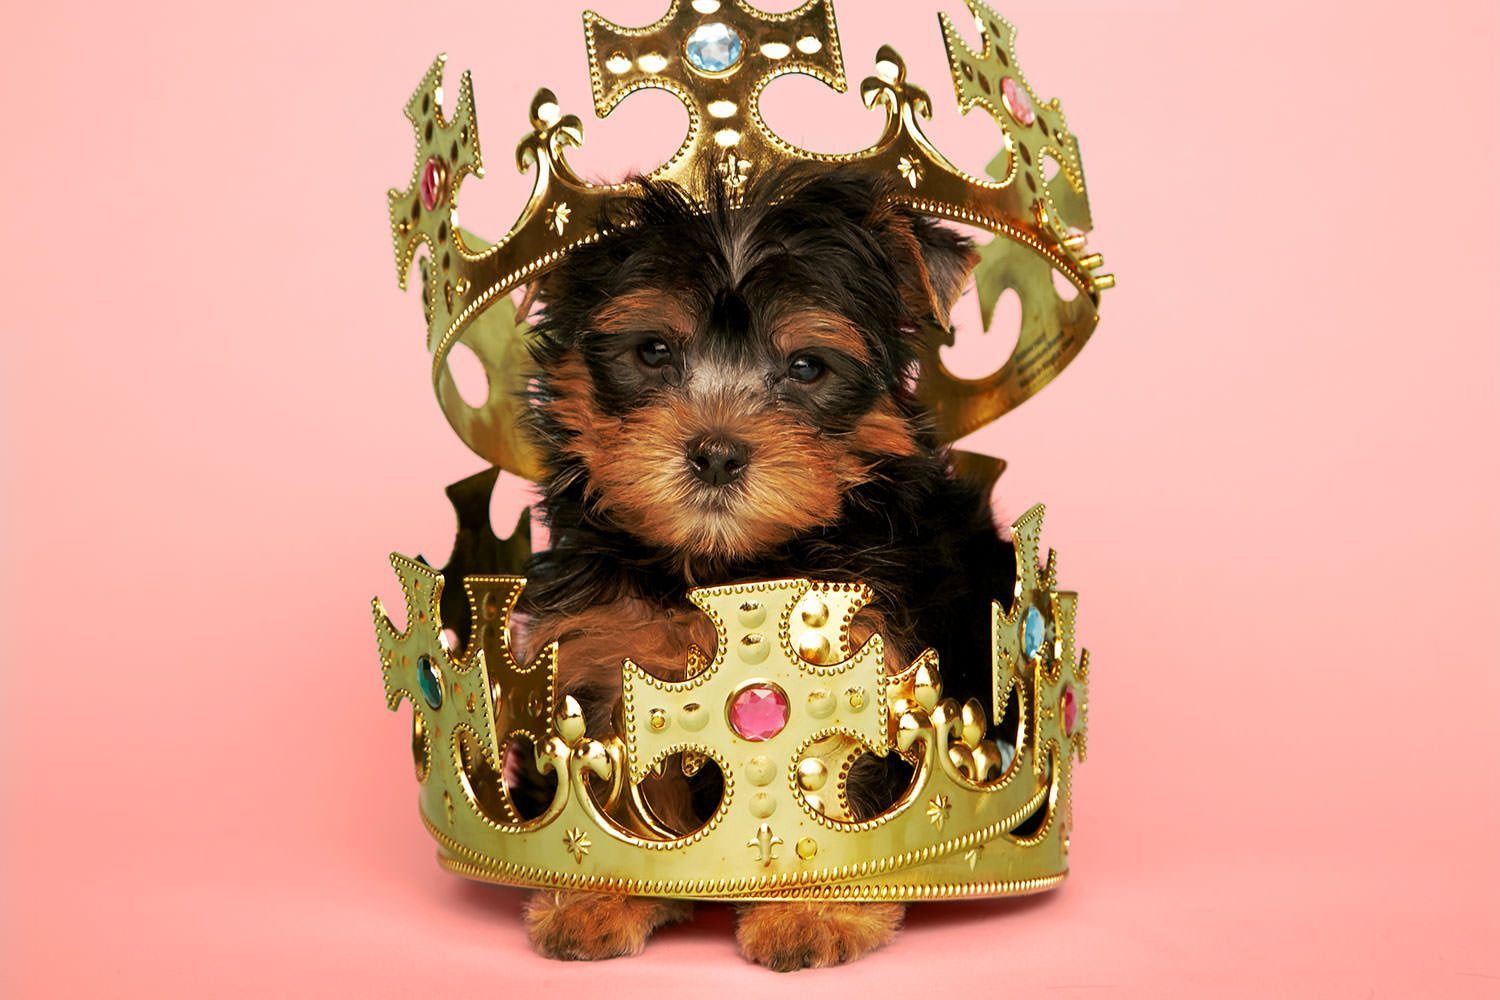 The Gold Standard Of Yorkshire Terriers Yorkie Cute Teacup Puppies Yorkie Puppy